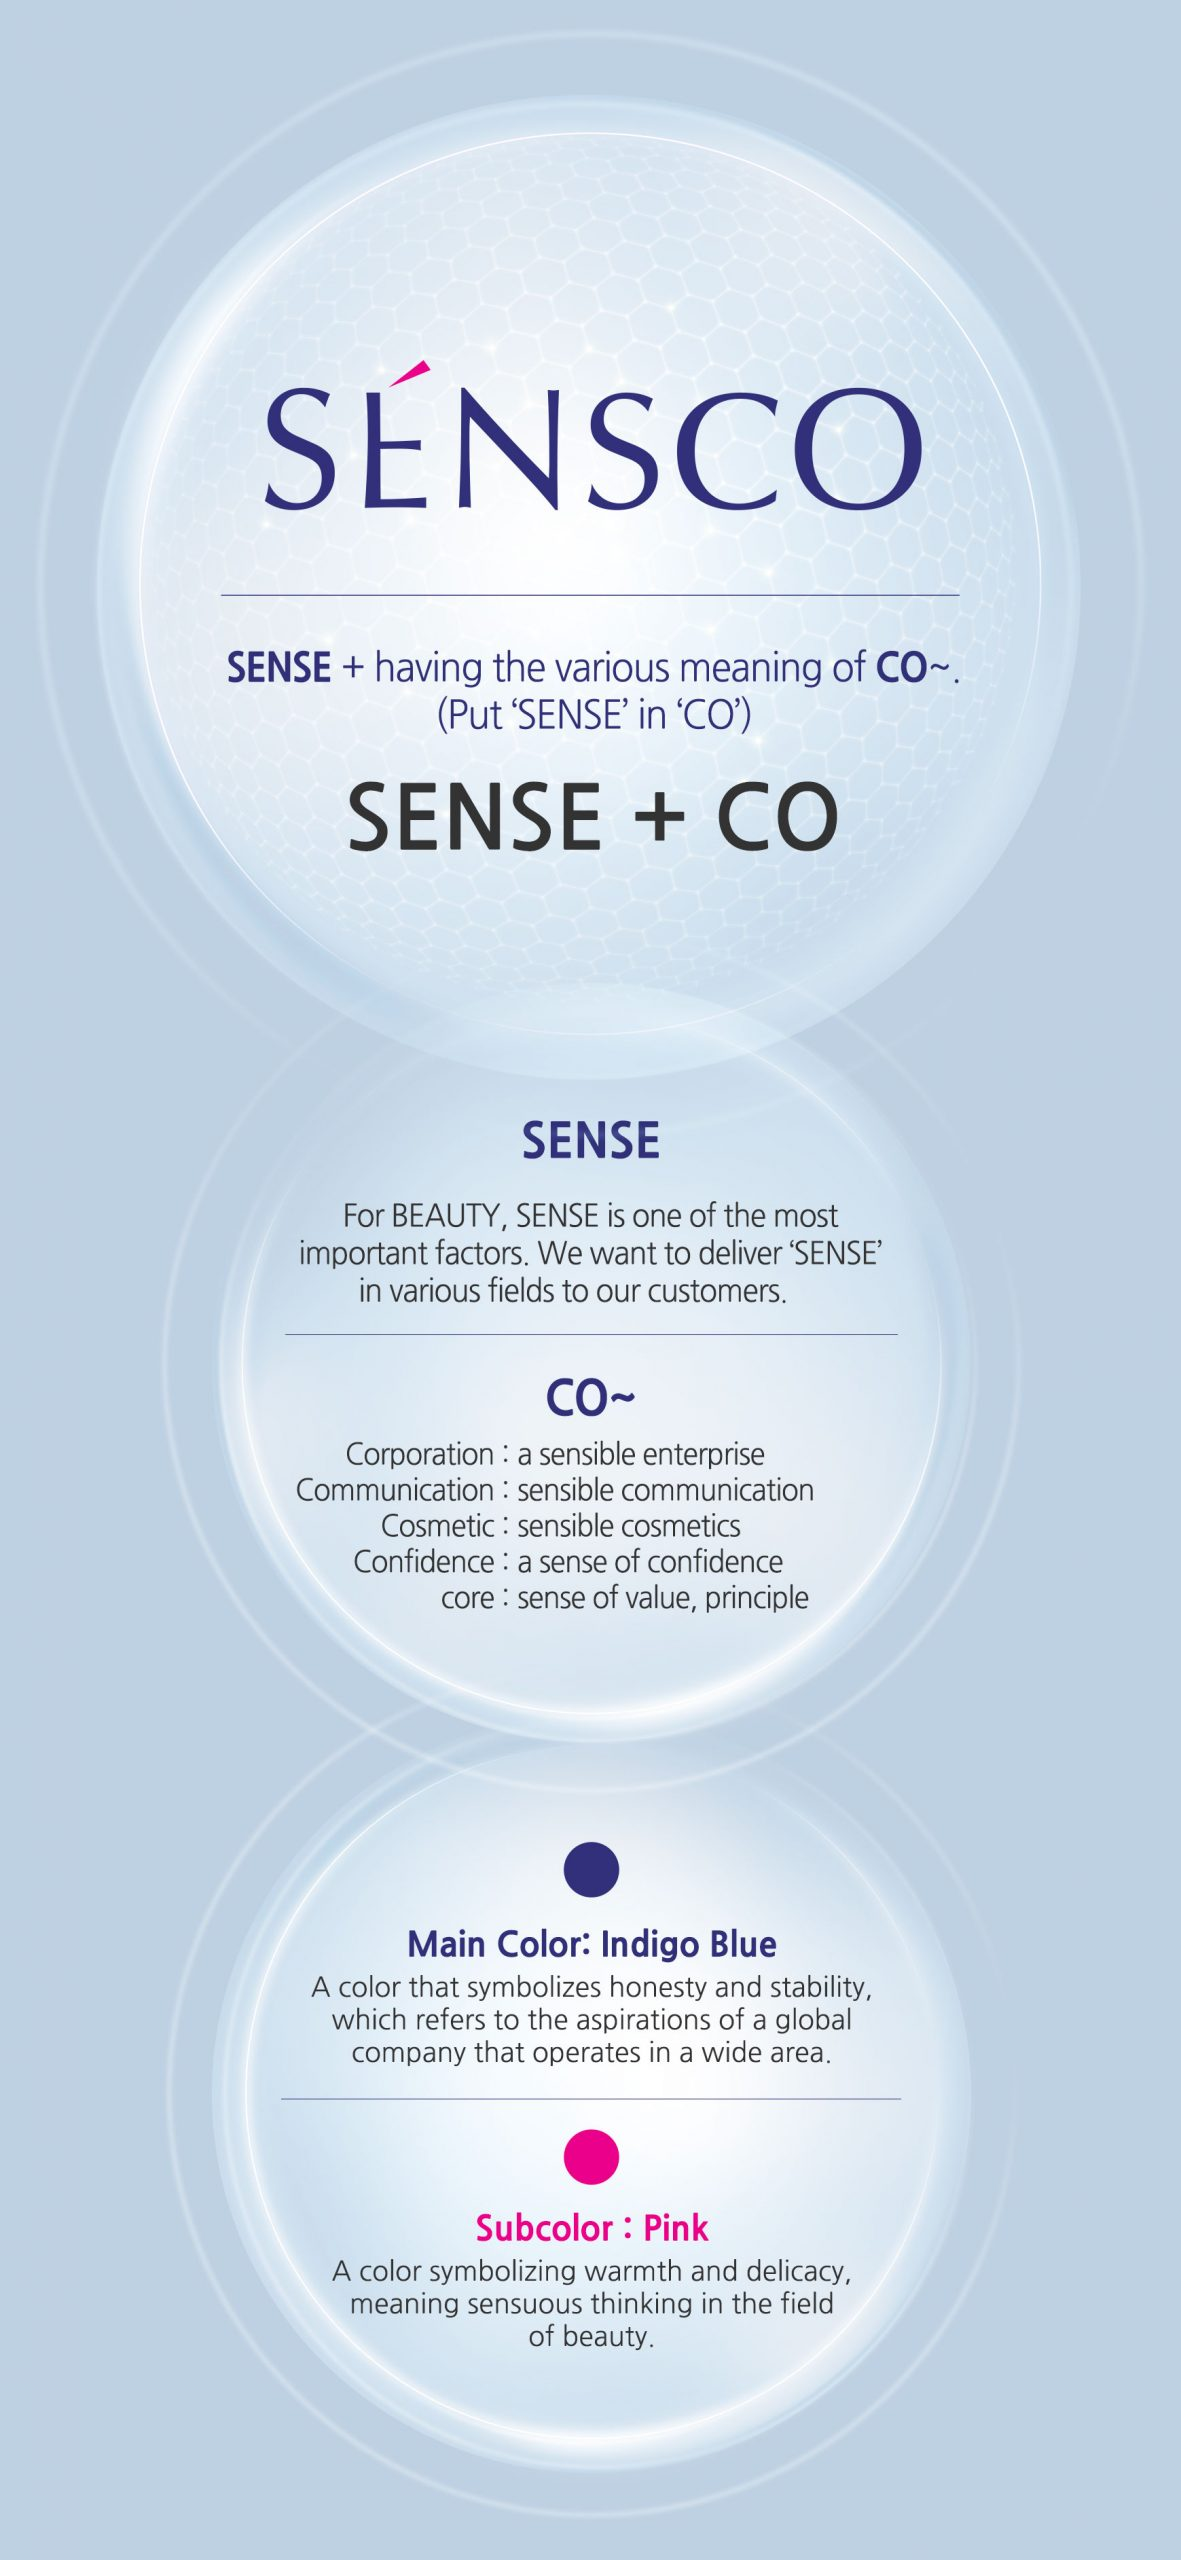 SENSCO = SENSE + having the various meaning of CO~. (Put 'SENSCE' in 'CO') For BEAUTY, SENSE is one of the most important factors. We want to deliver 'SENSE' in various fields to our customers. Corporation : a sensible enterprise Communication : sensible communication Cosmetic : sensible cosmetics Confidence : a sense of confidence core : sense of value, principle